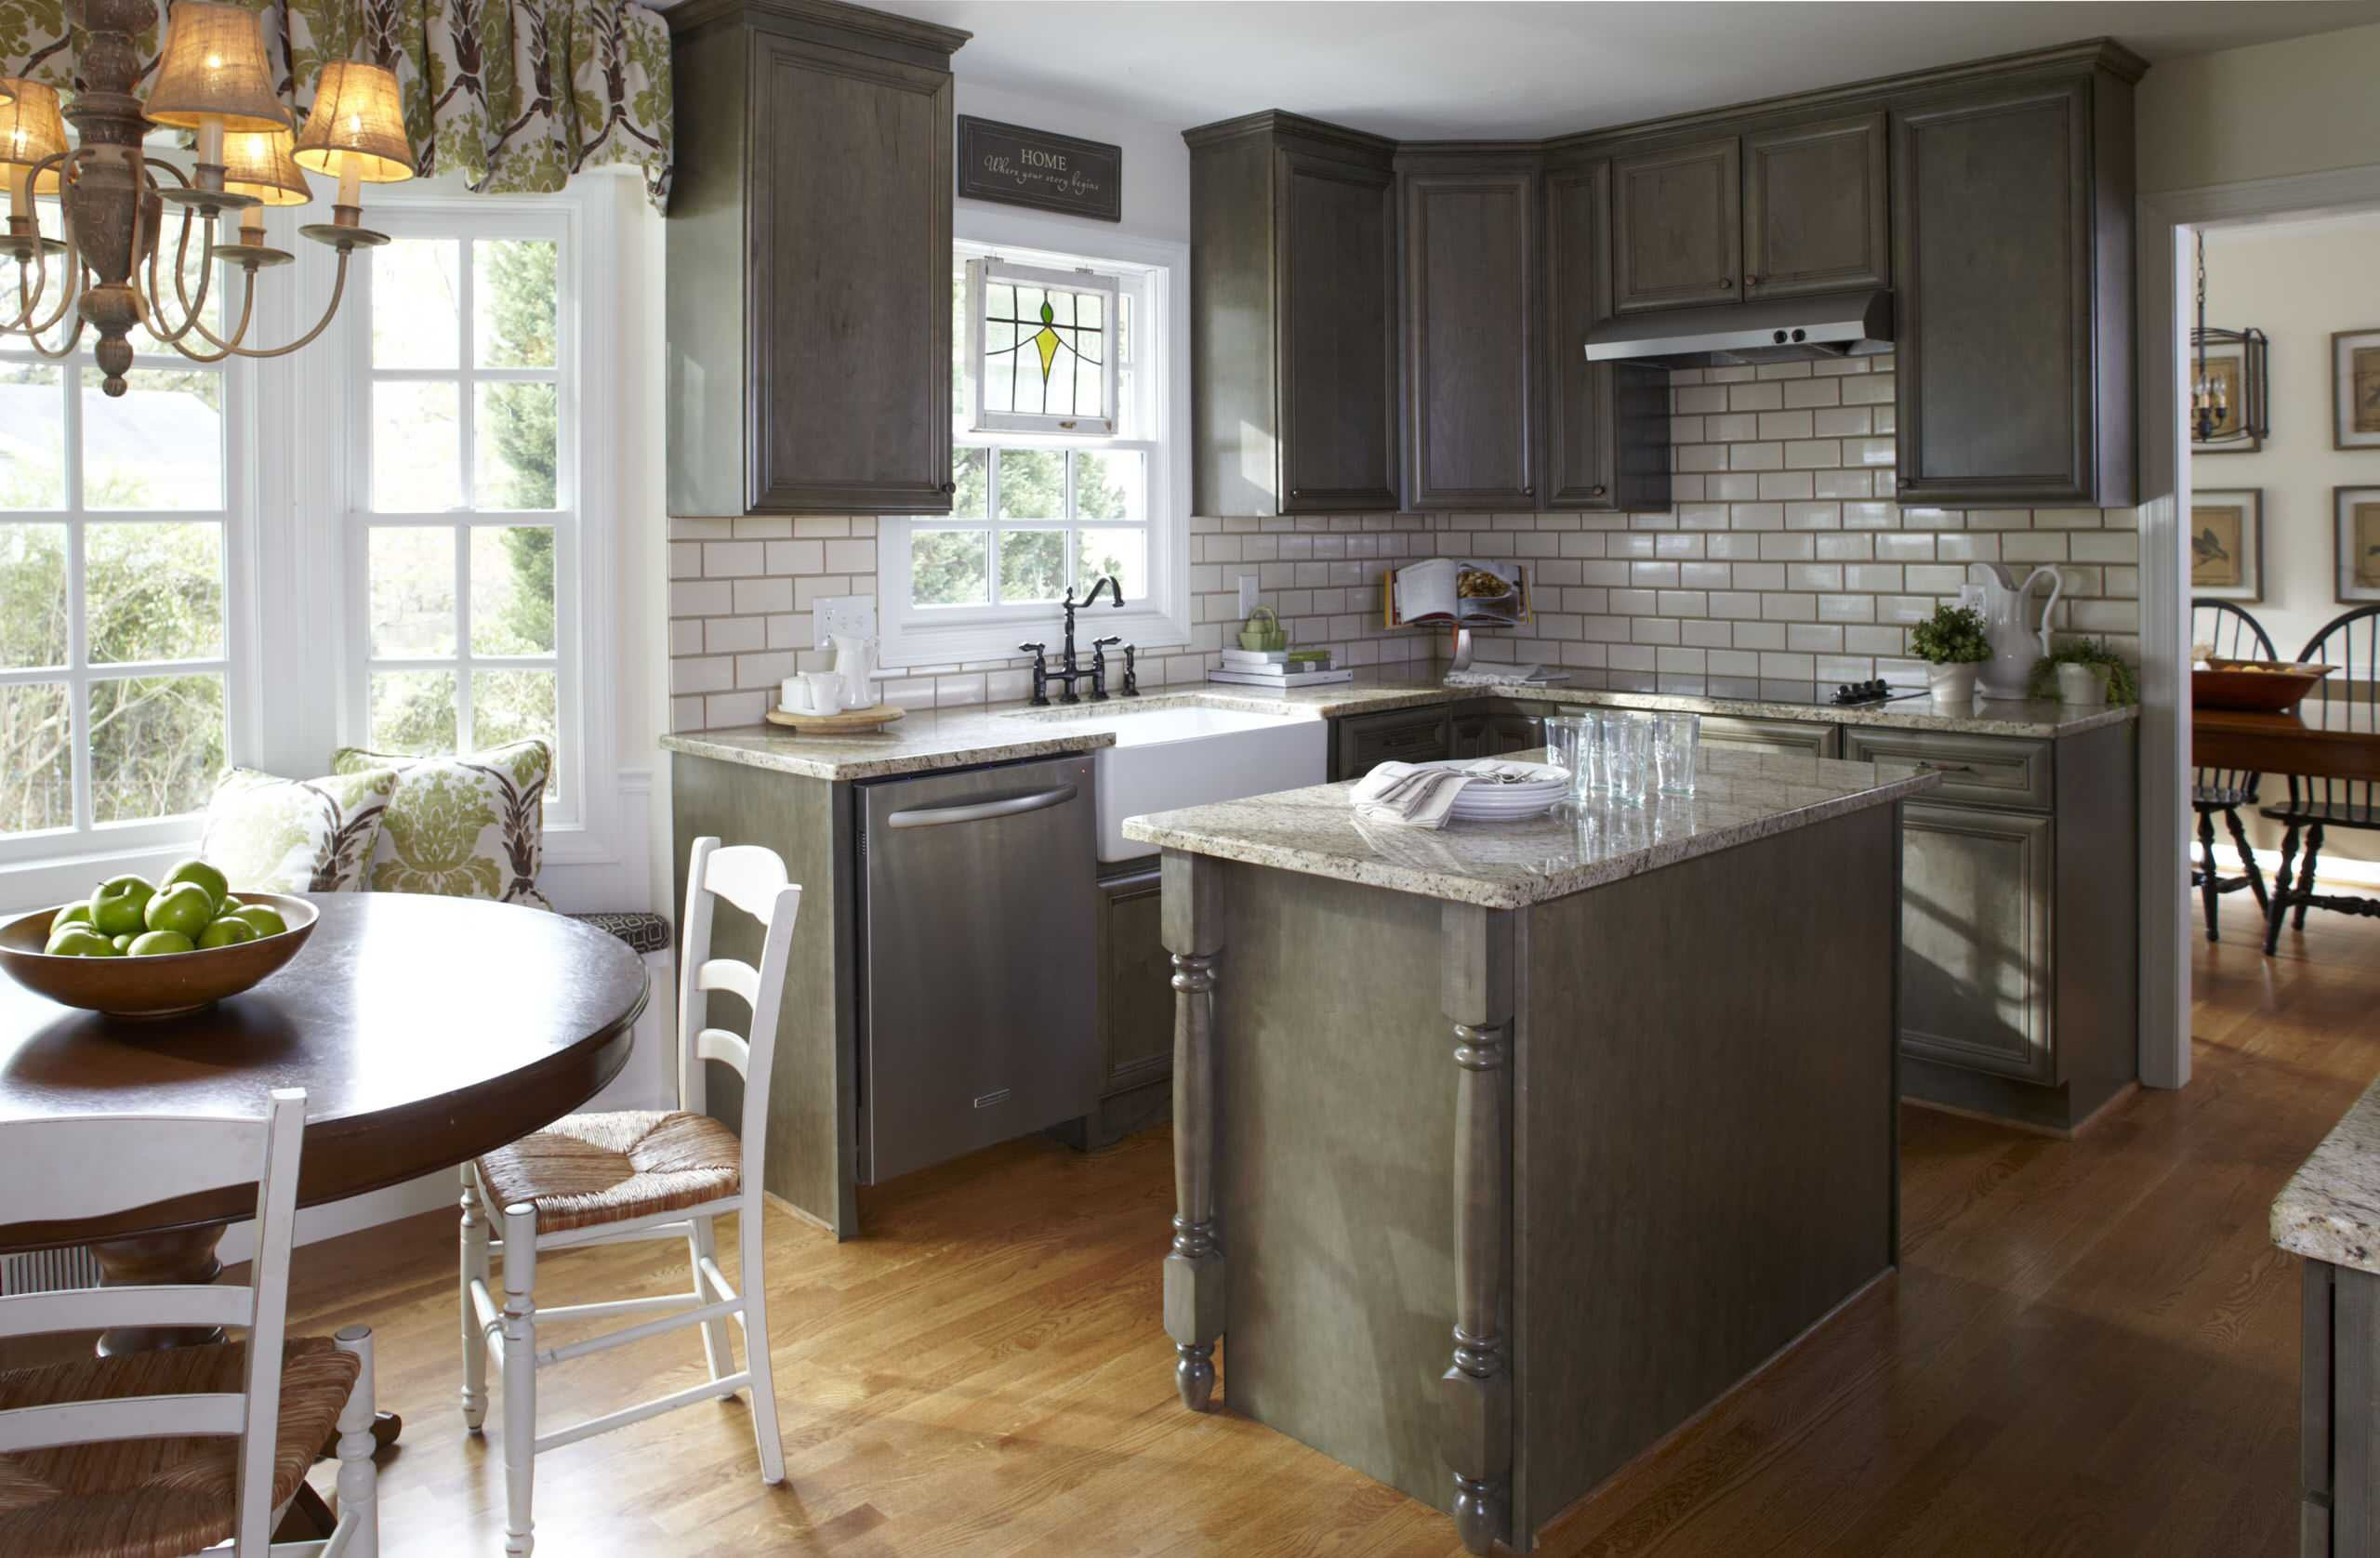 Perfect Elegant Small Kitchens With Islands For Your Kitchen